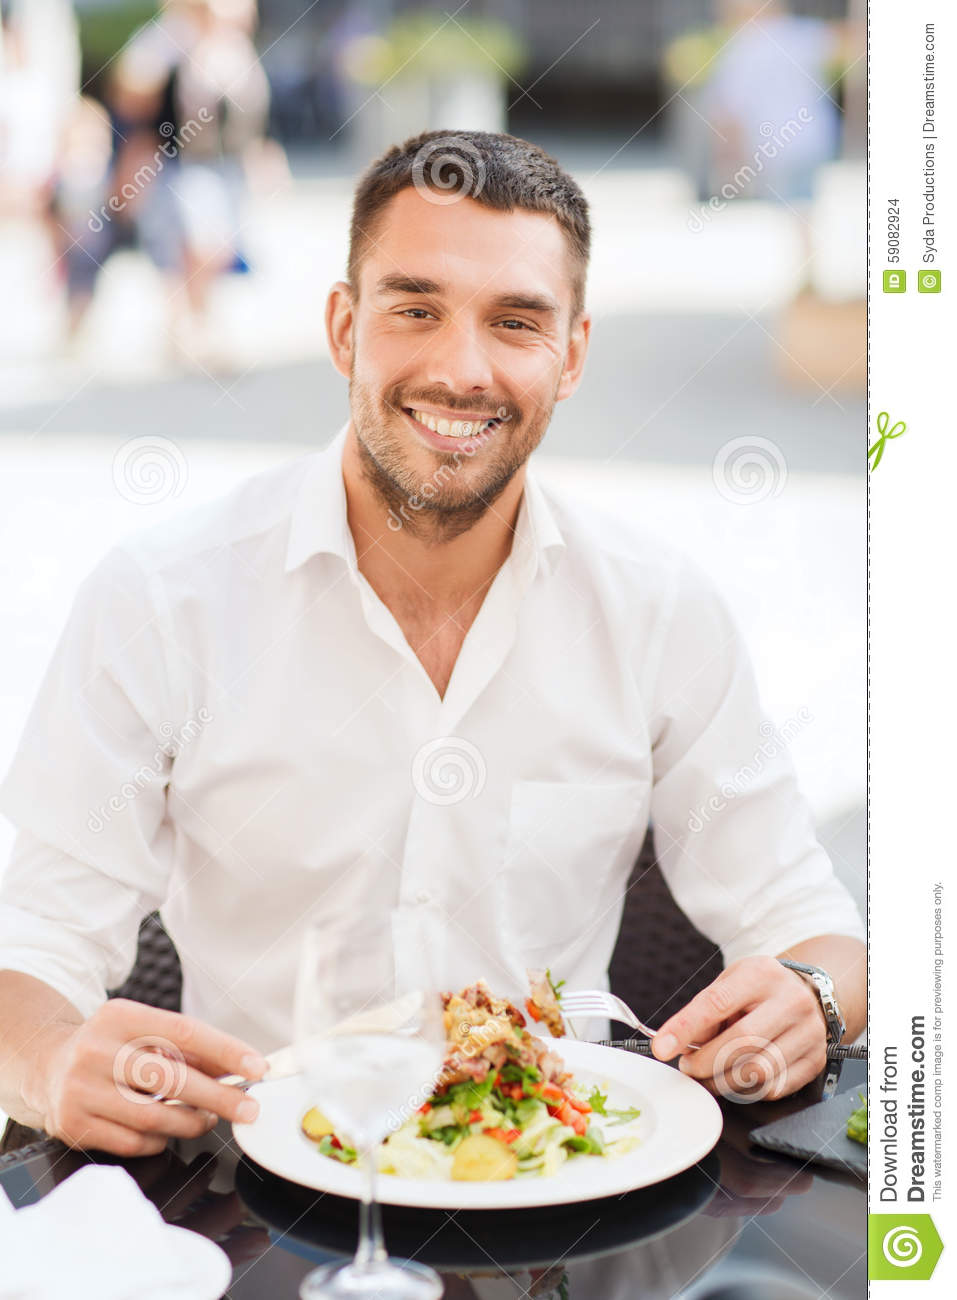 happy-man-eating-salad-dinner-restaurant-people-holidays-food-leisure-concept-fork-knife-terrace-59082924.jpg